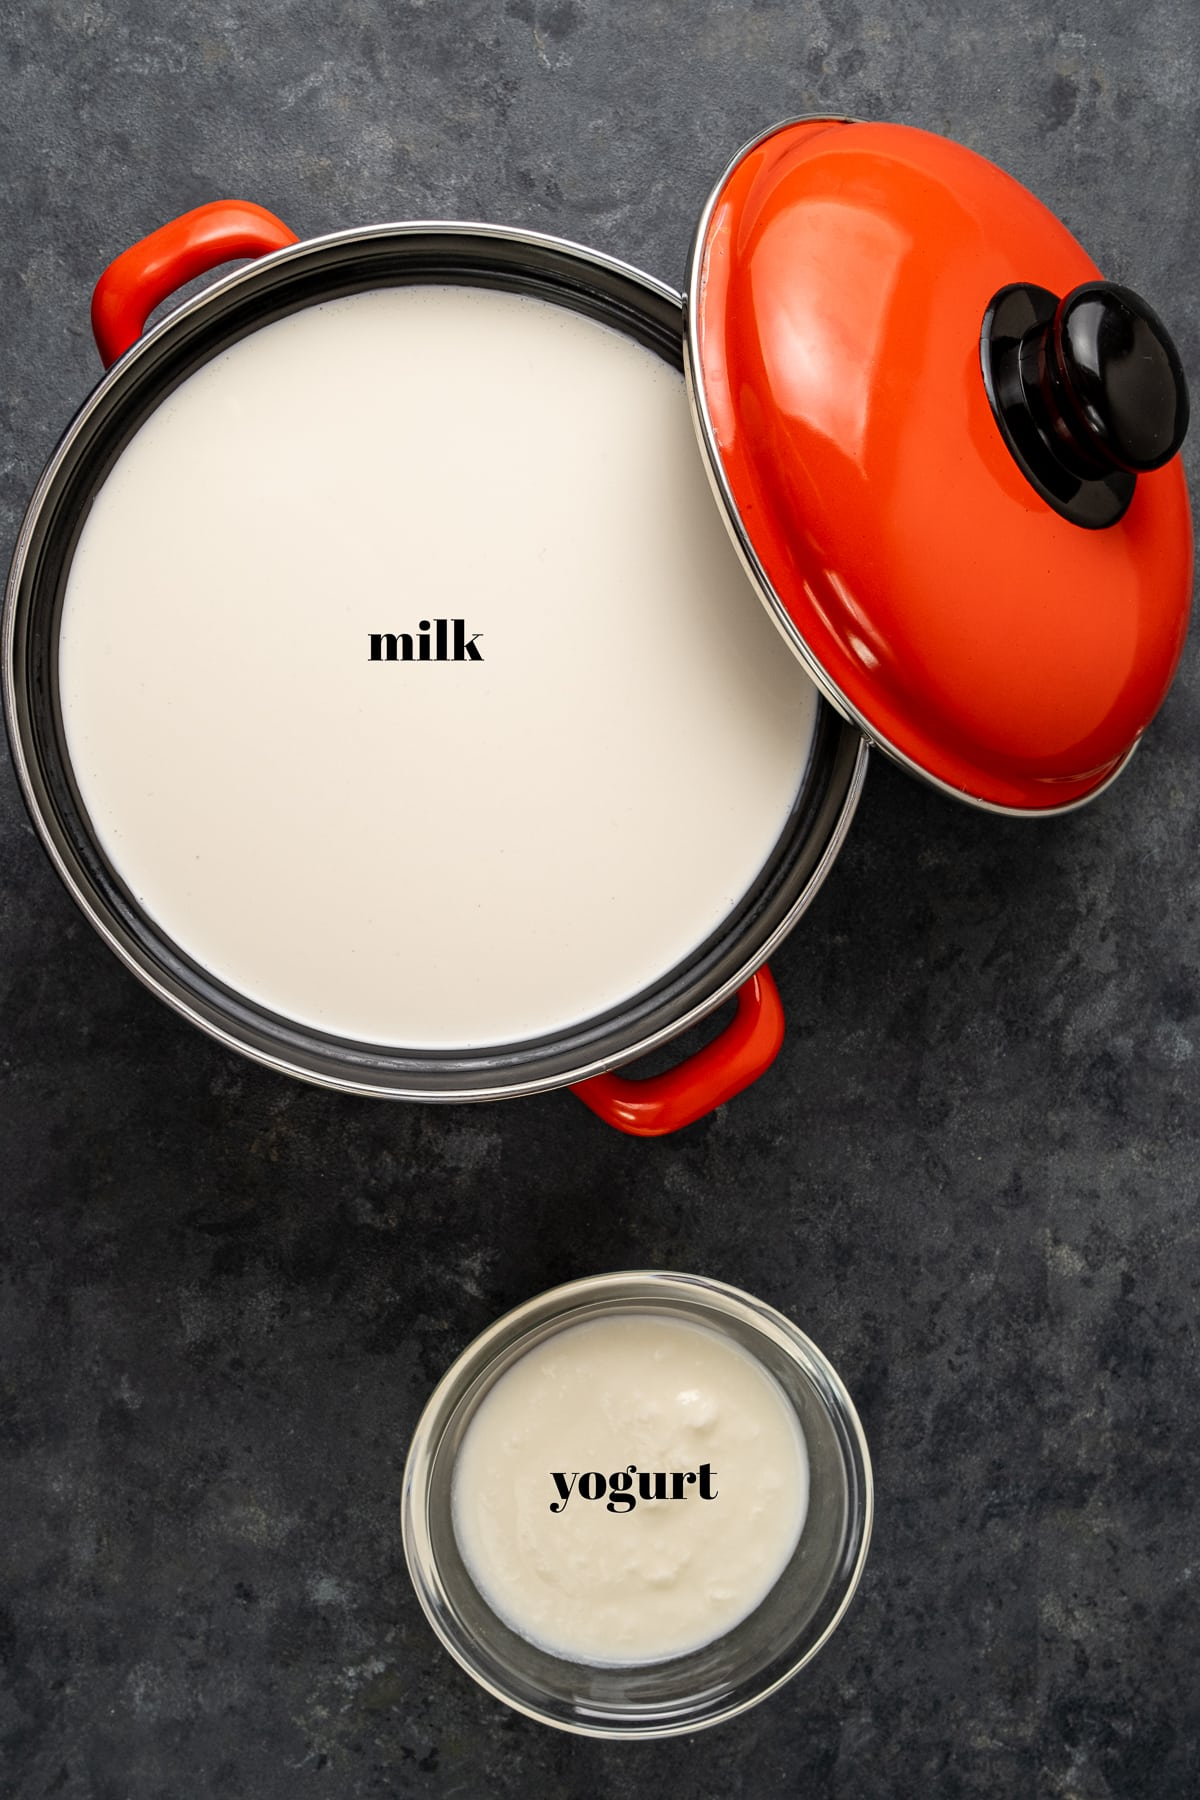 Milk in an enamel pot with a red lid on the side and yogurt in a small bowl on a dark background.